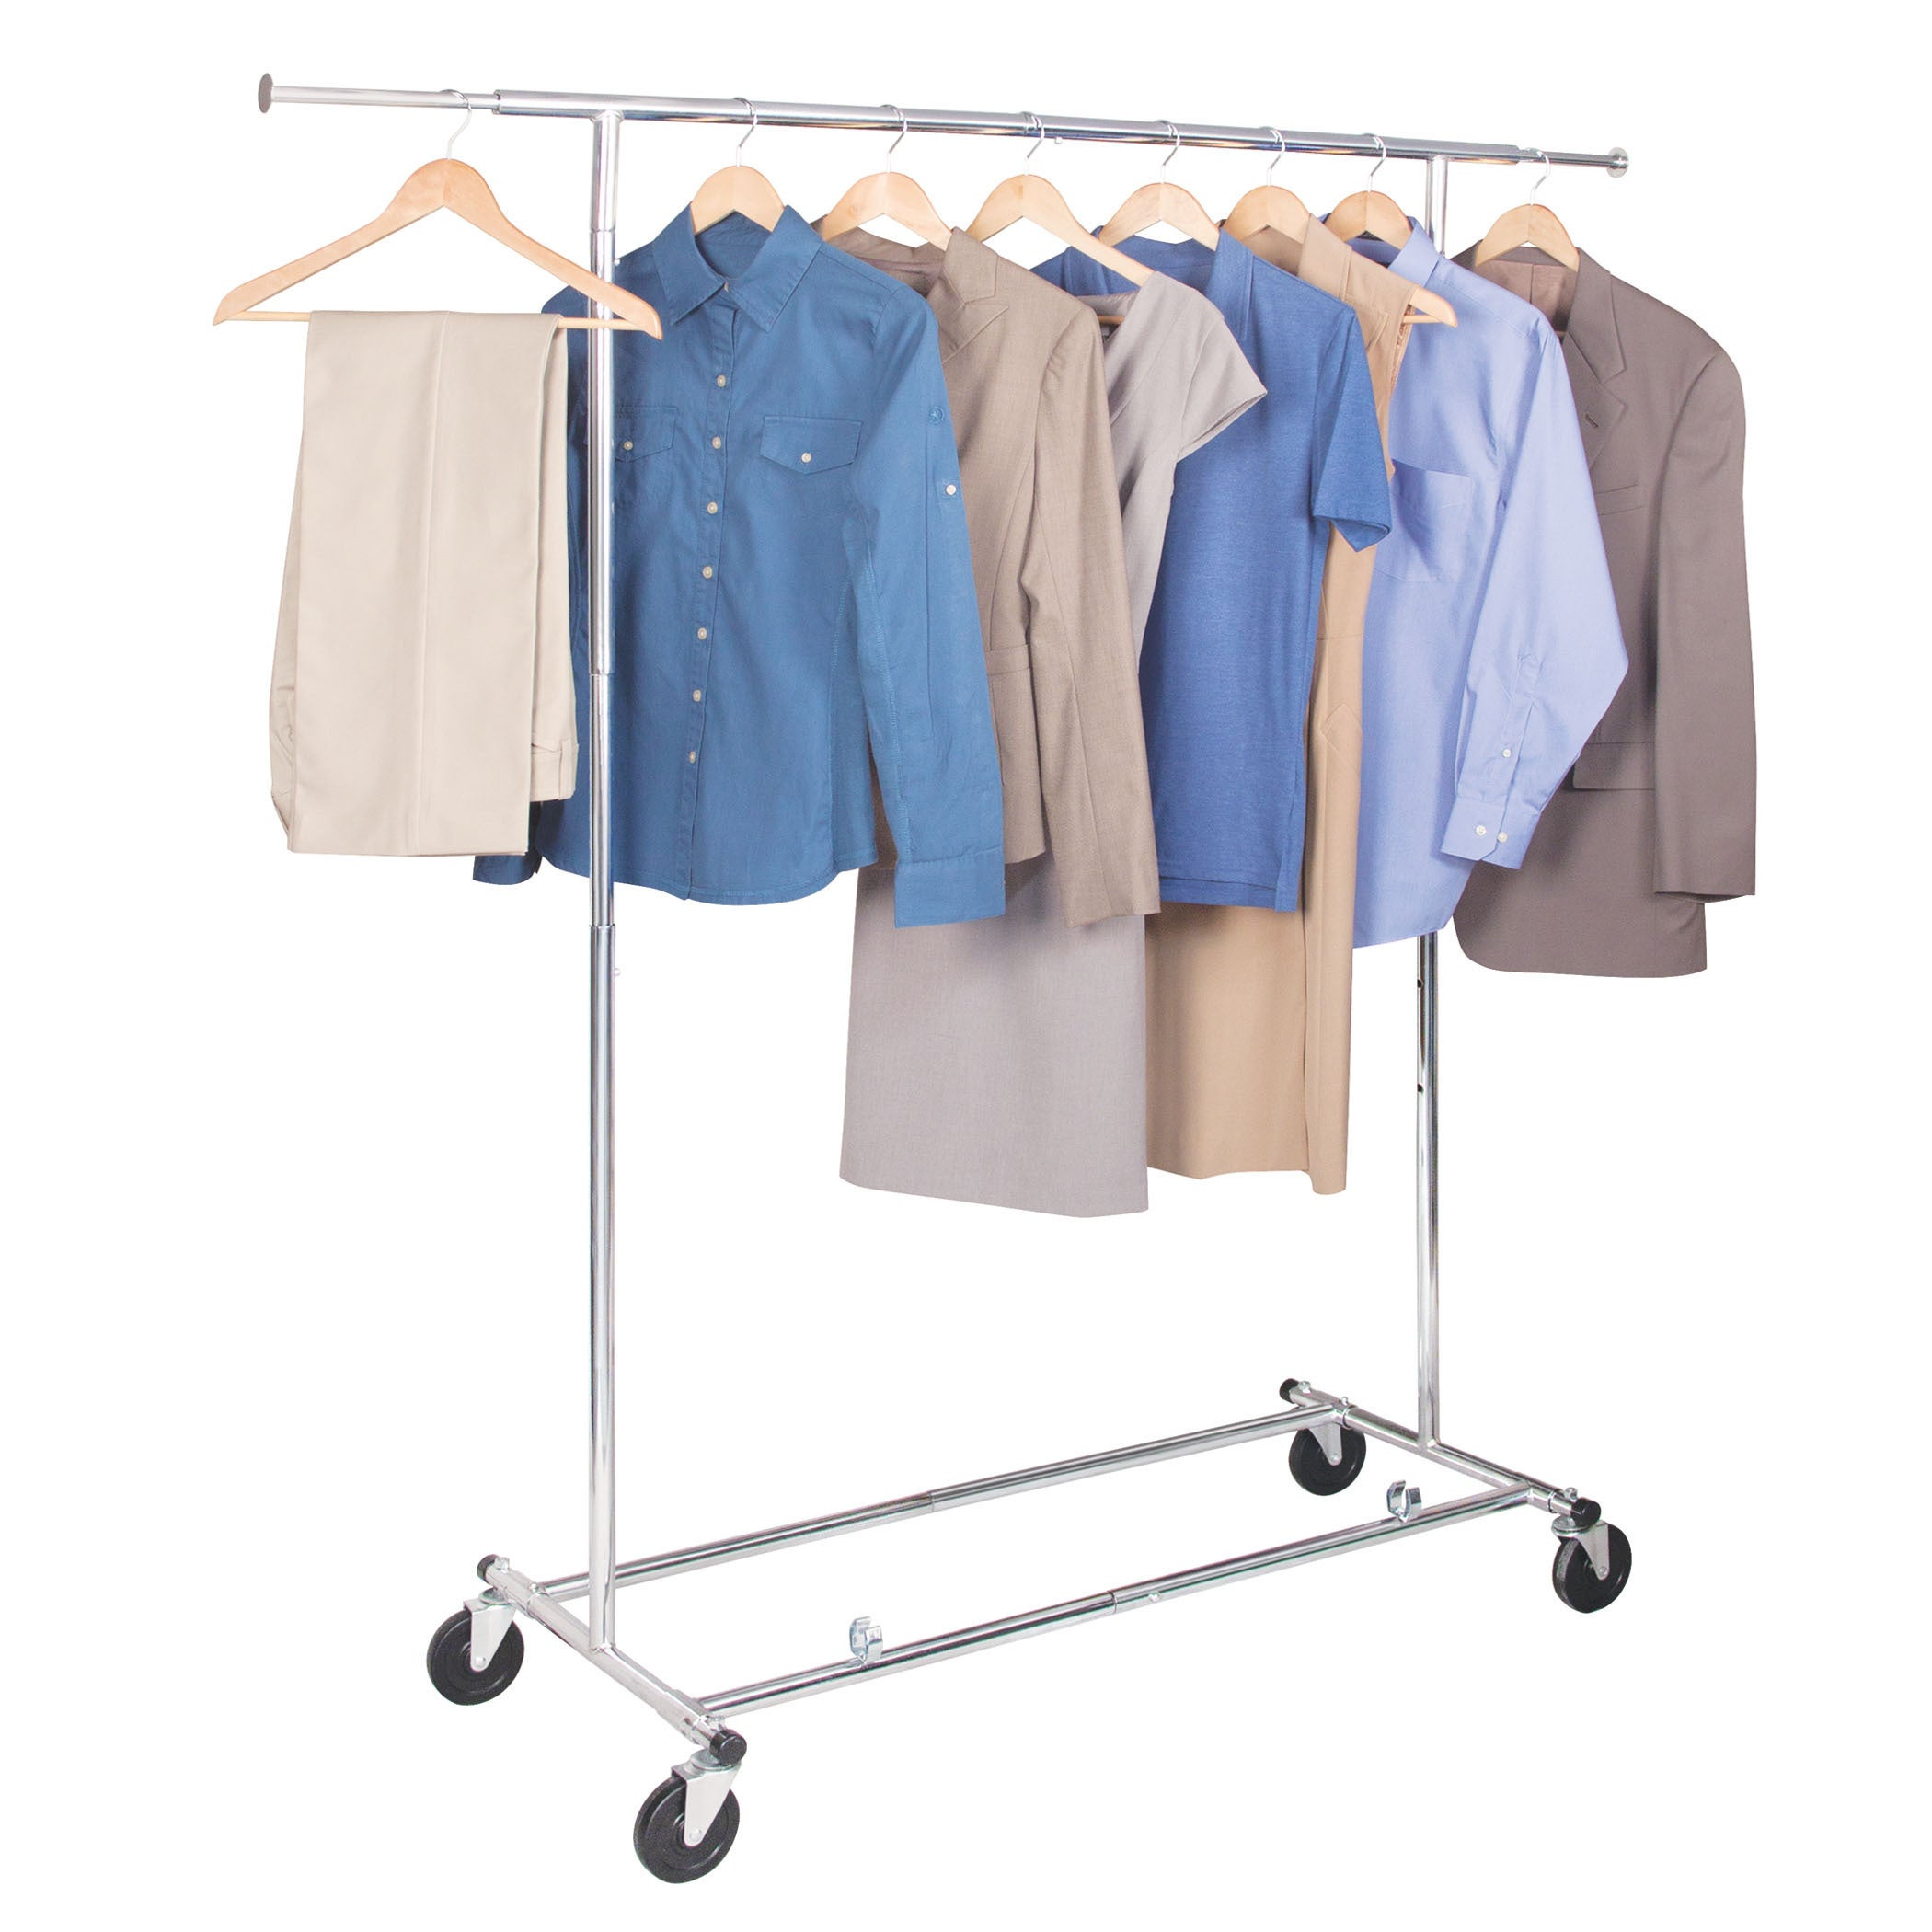 pin peruse free clothes wardrobes freestanding all information designer standing from rack high large coat piano